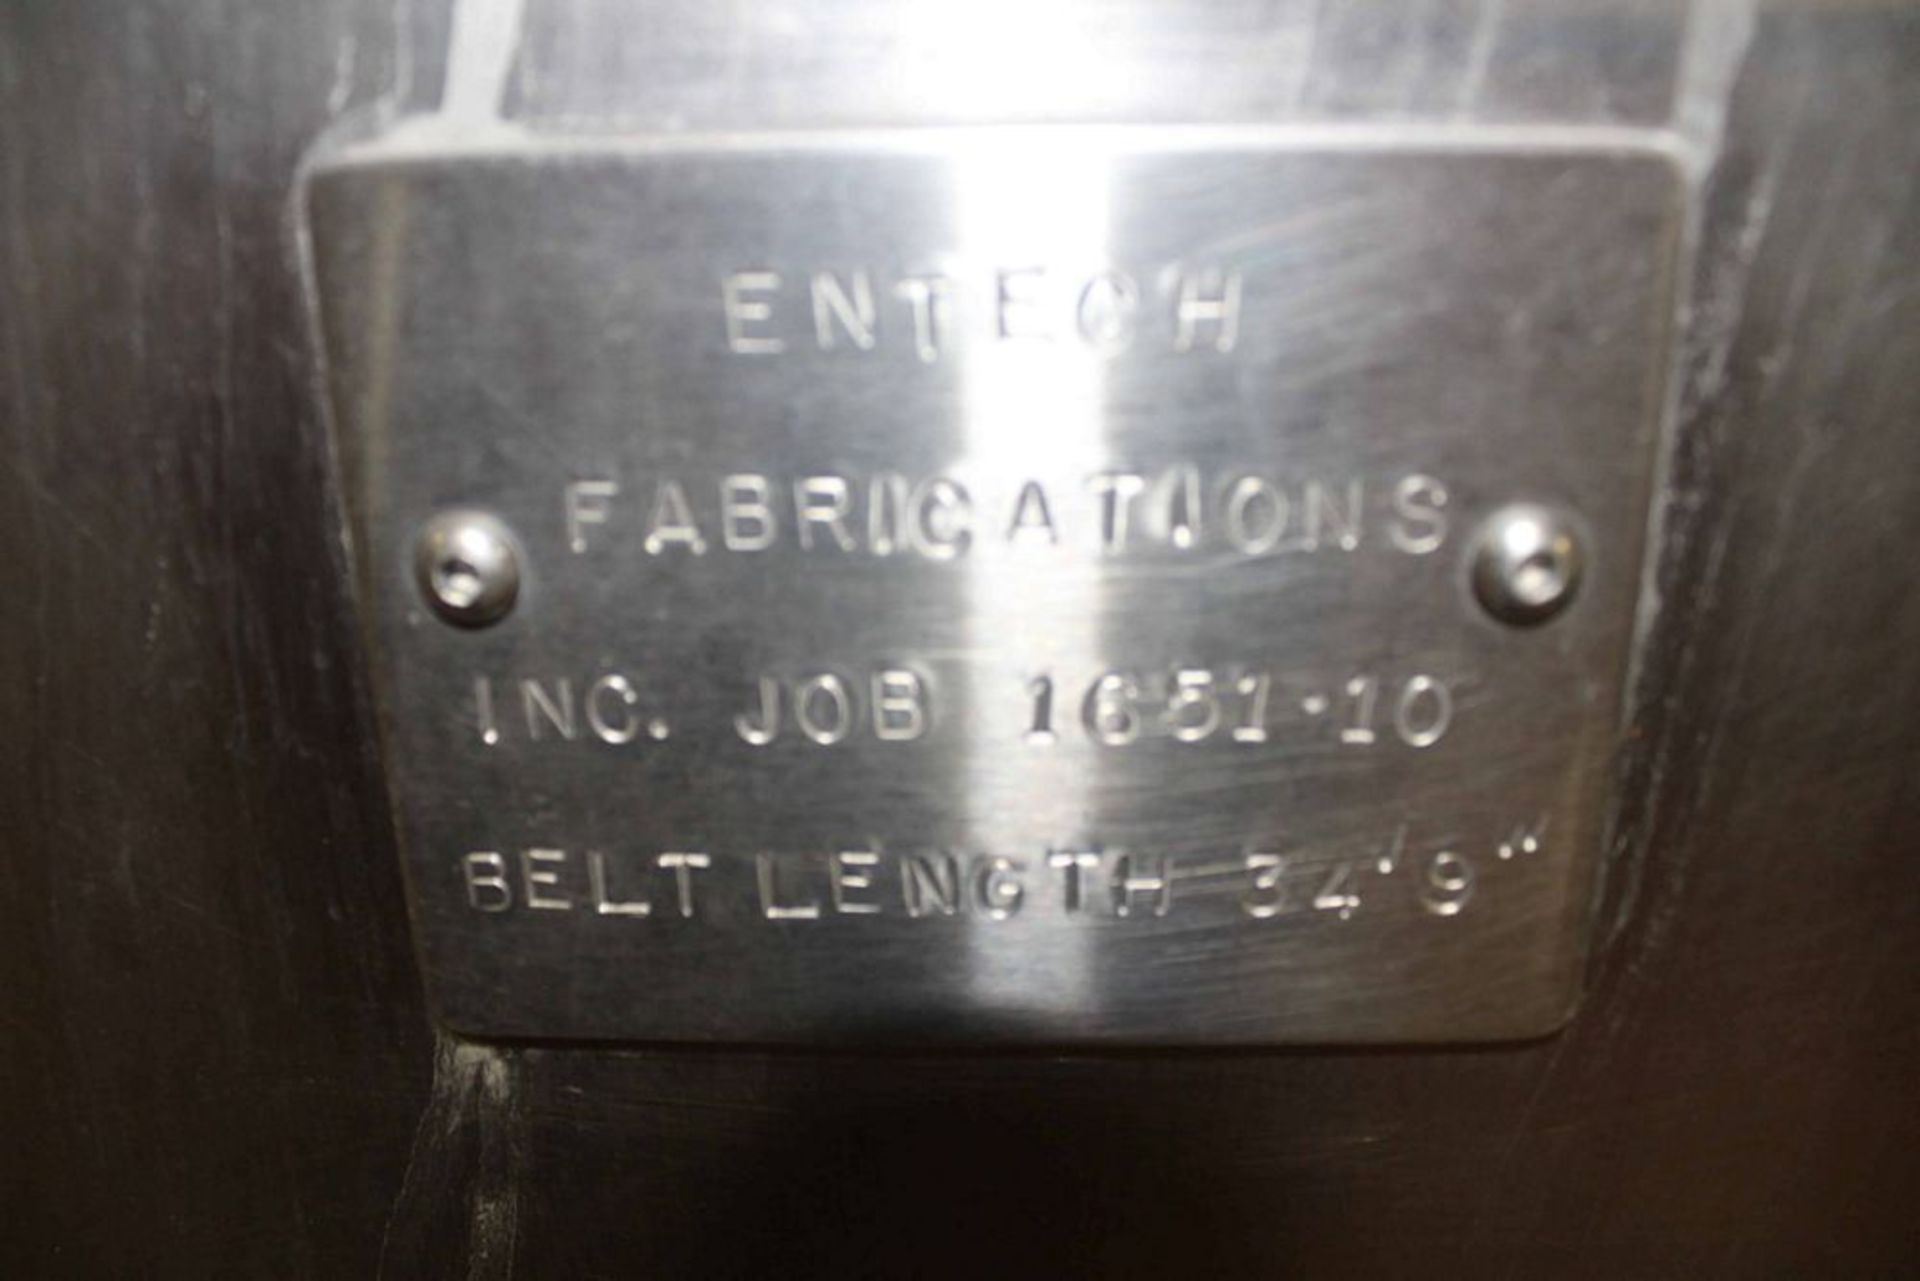 Lot 19177RB - Entech Fabrications Magnetic Can Elevator